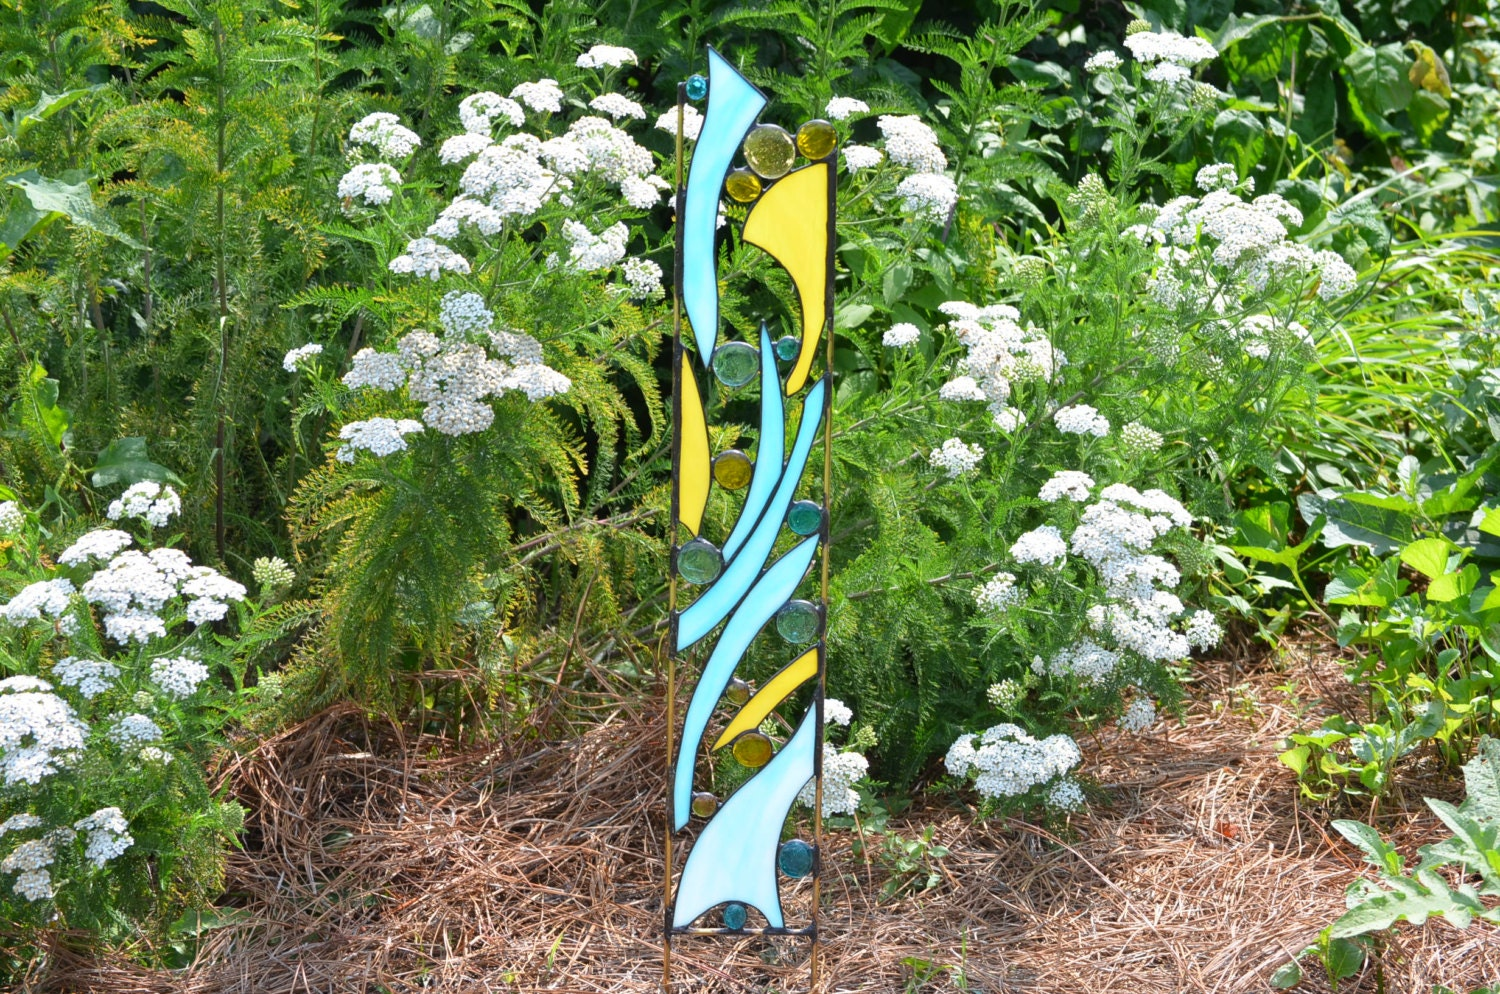 Stained Glass Garden Ornament Blue and Yellow Yard Art